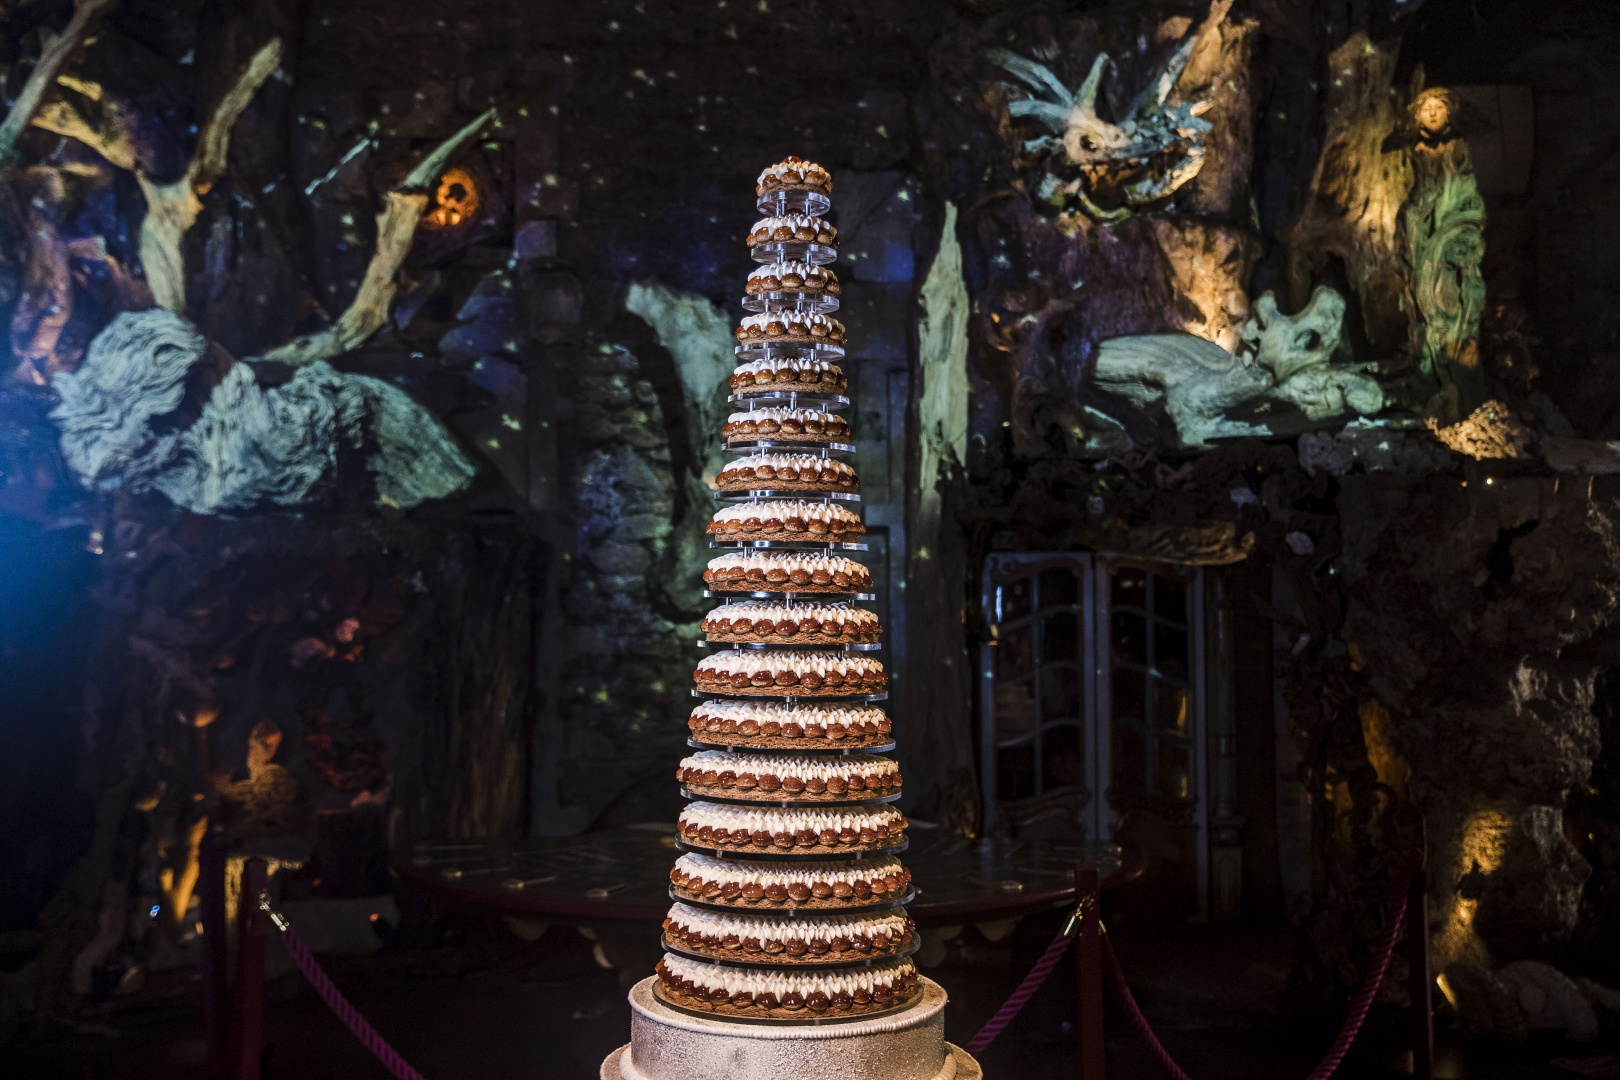 WEDDING CAKE BY CEDRIC GROLET - PARIS